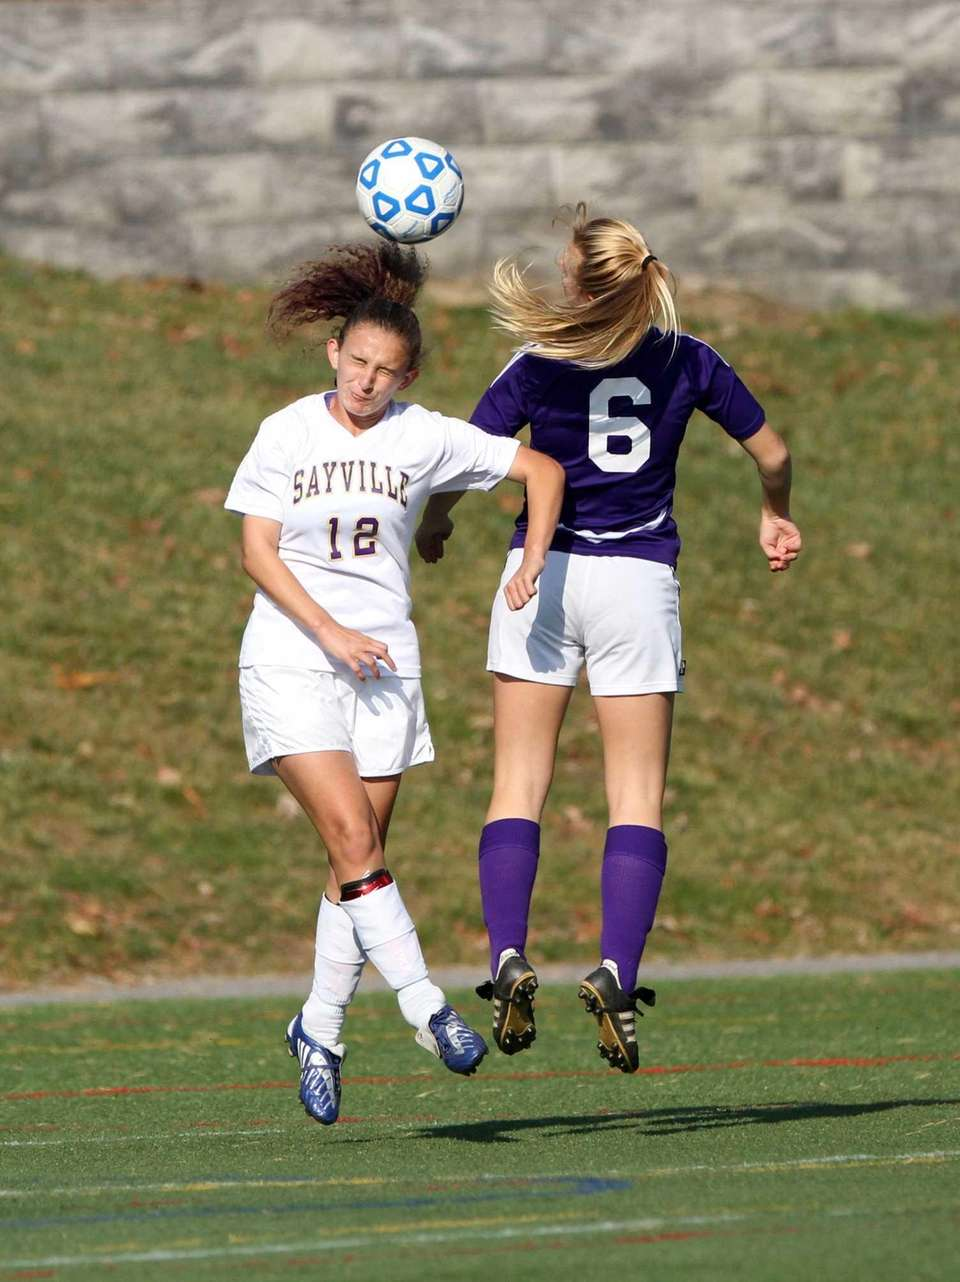 Sayville's Victoria Ross and Islip's Lauren Sparks go